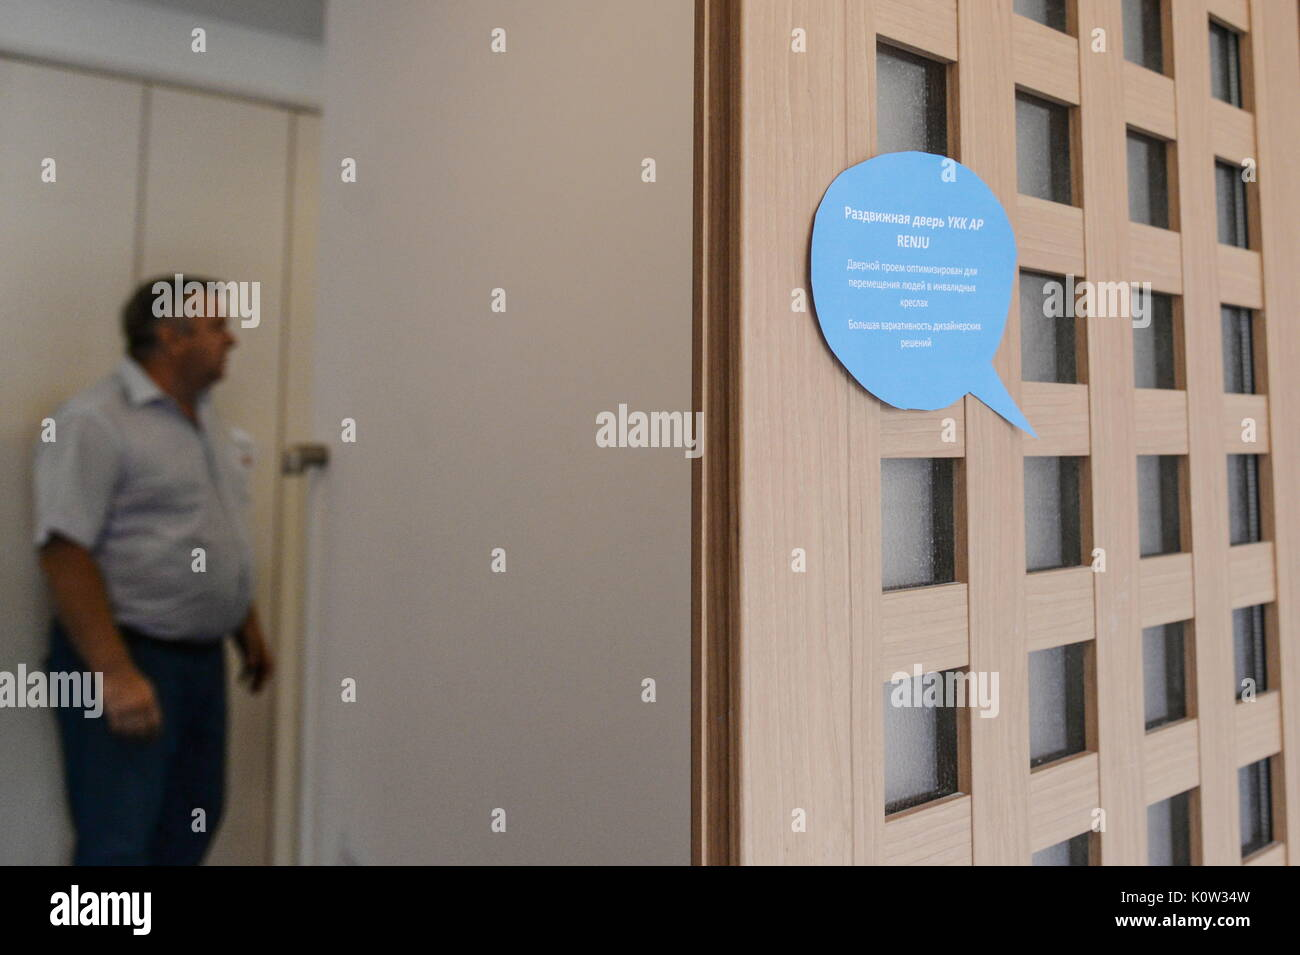 VORONEZH, RUSSIA - AUGUST 24, 2017: A door of the first Russian-Japanese two-storey smart home made of wood and eco-friendly materials. The house is equipped with energy management system, air quality monitors and temperature sensors. Kristina Brazhnikova/TASS - Stock Image